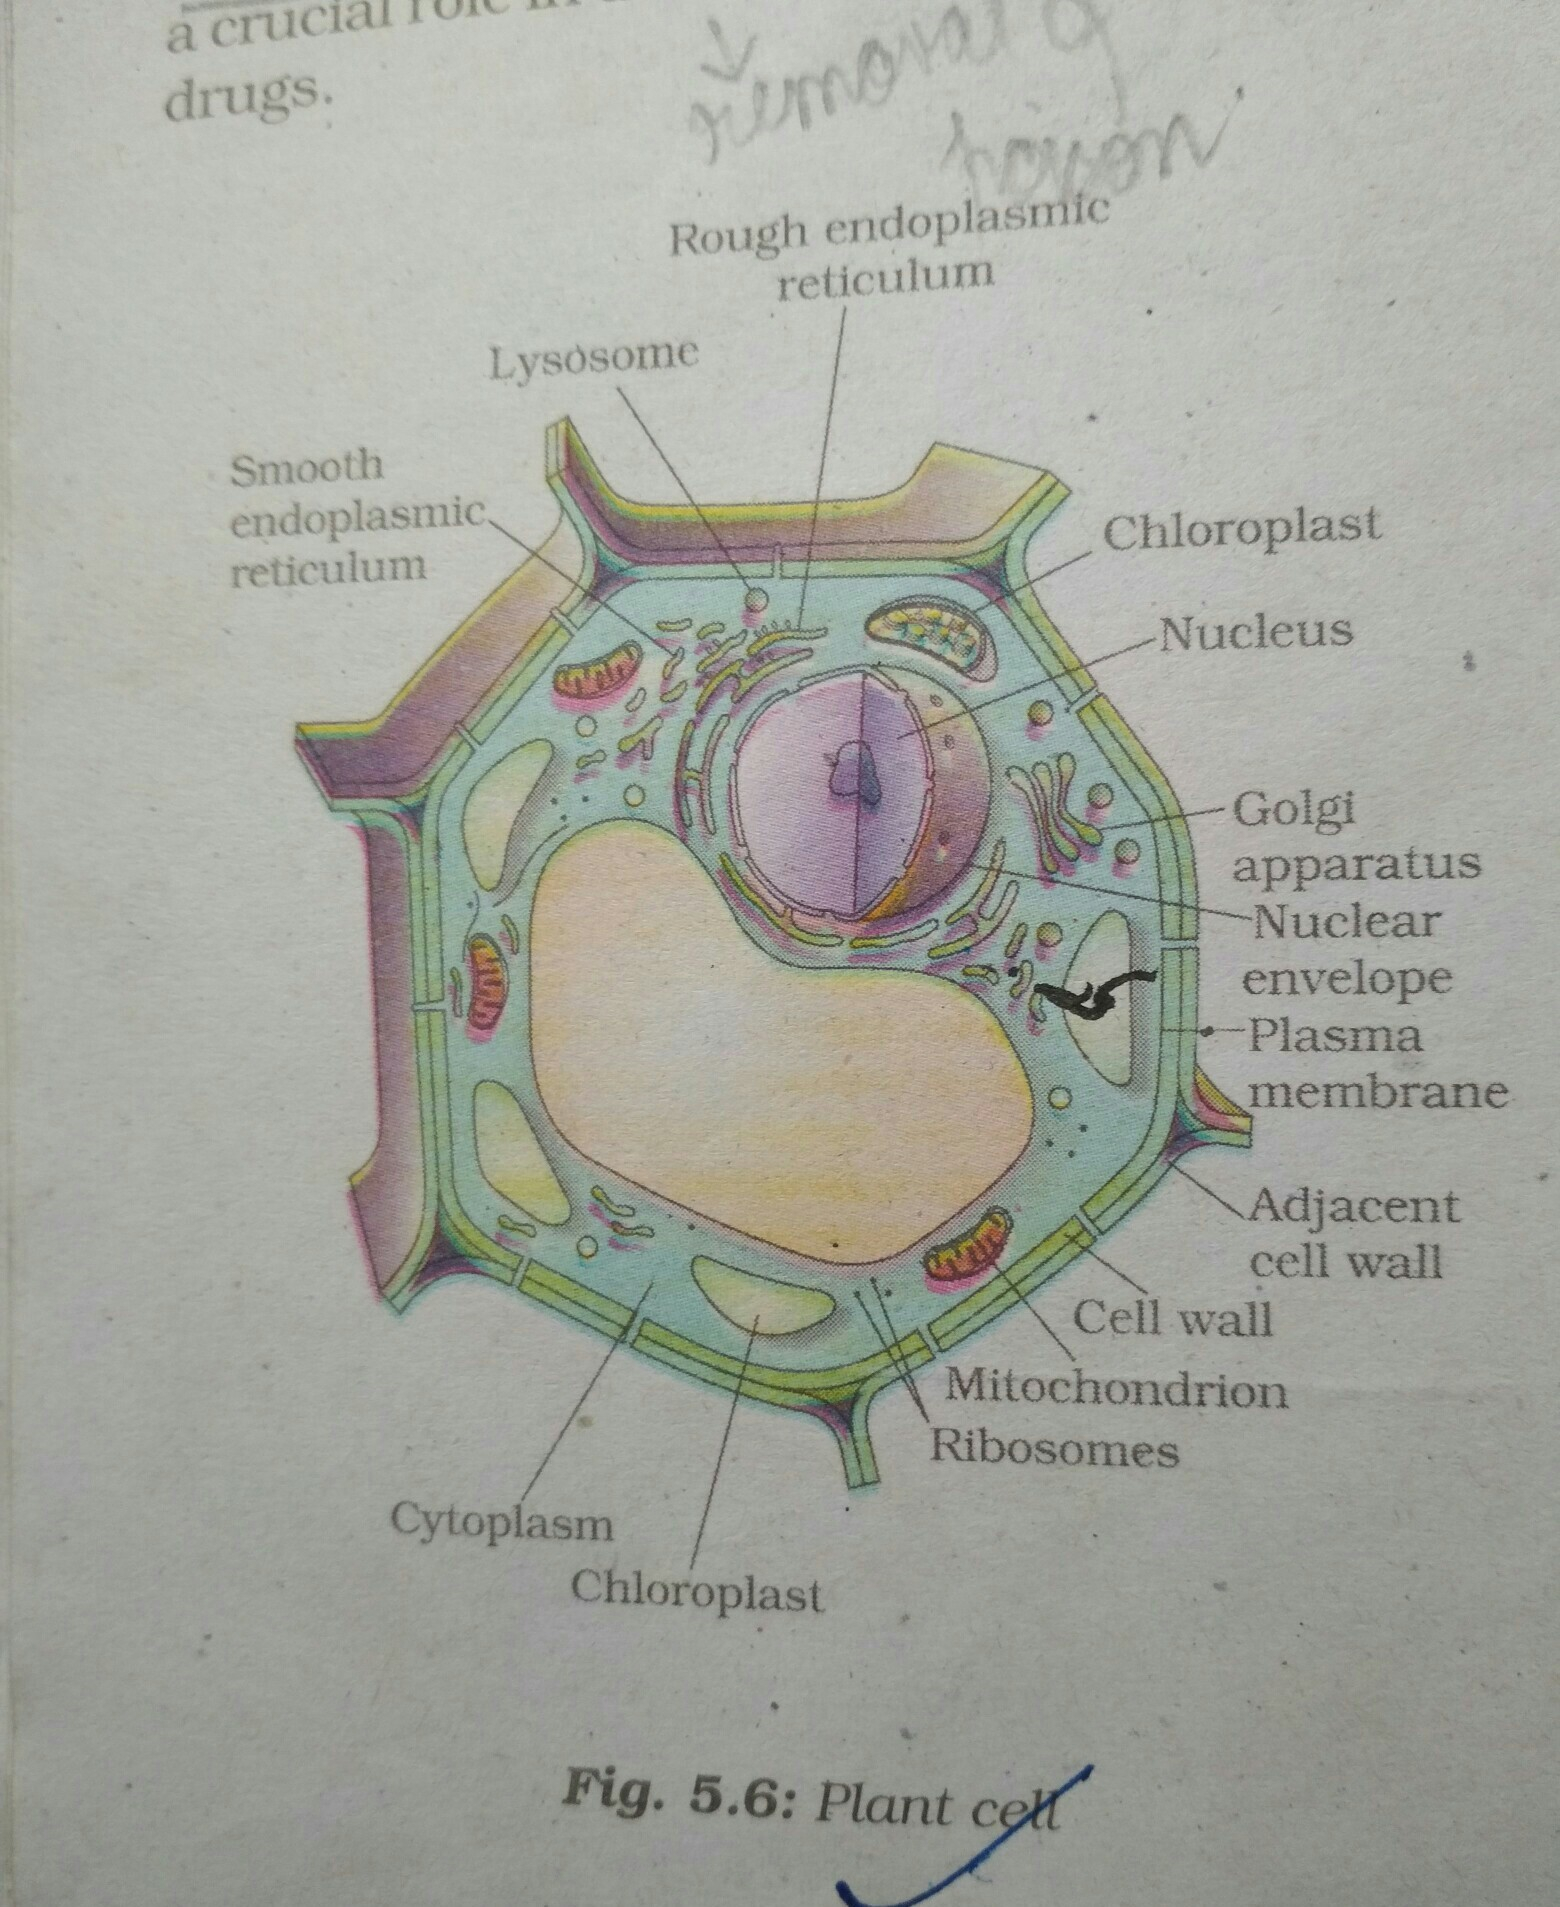 Plant Cell Diagram May U Please Help Me In Drawing The Diagram Of Plant Cell Hand